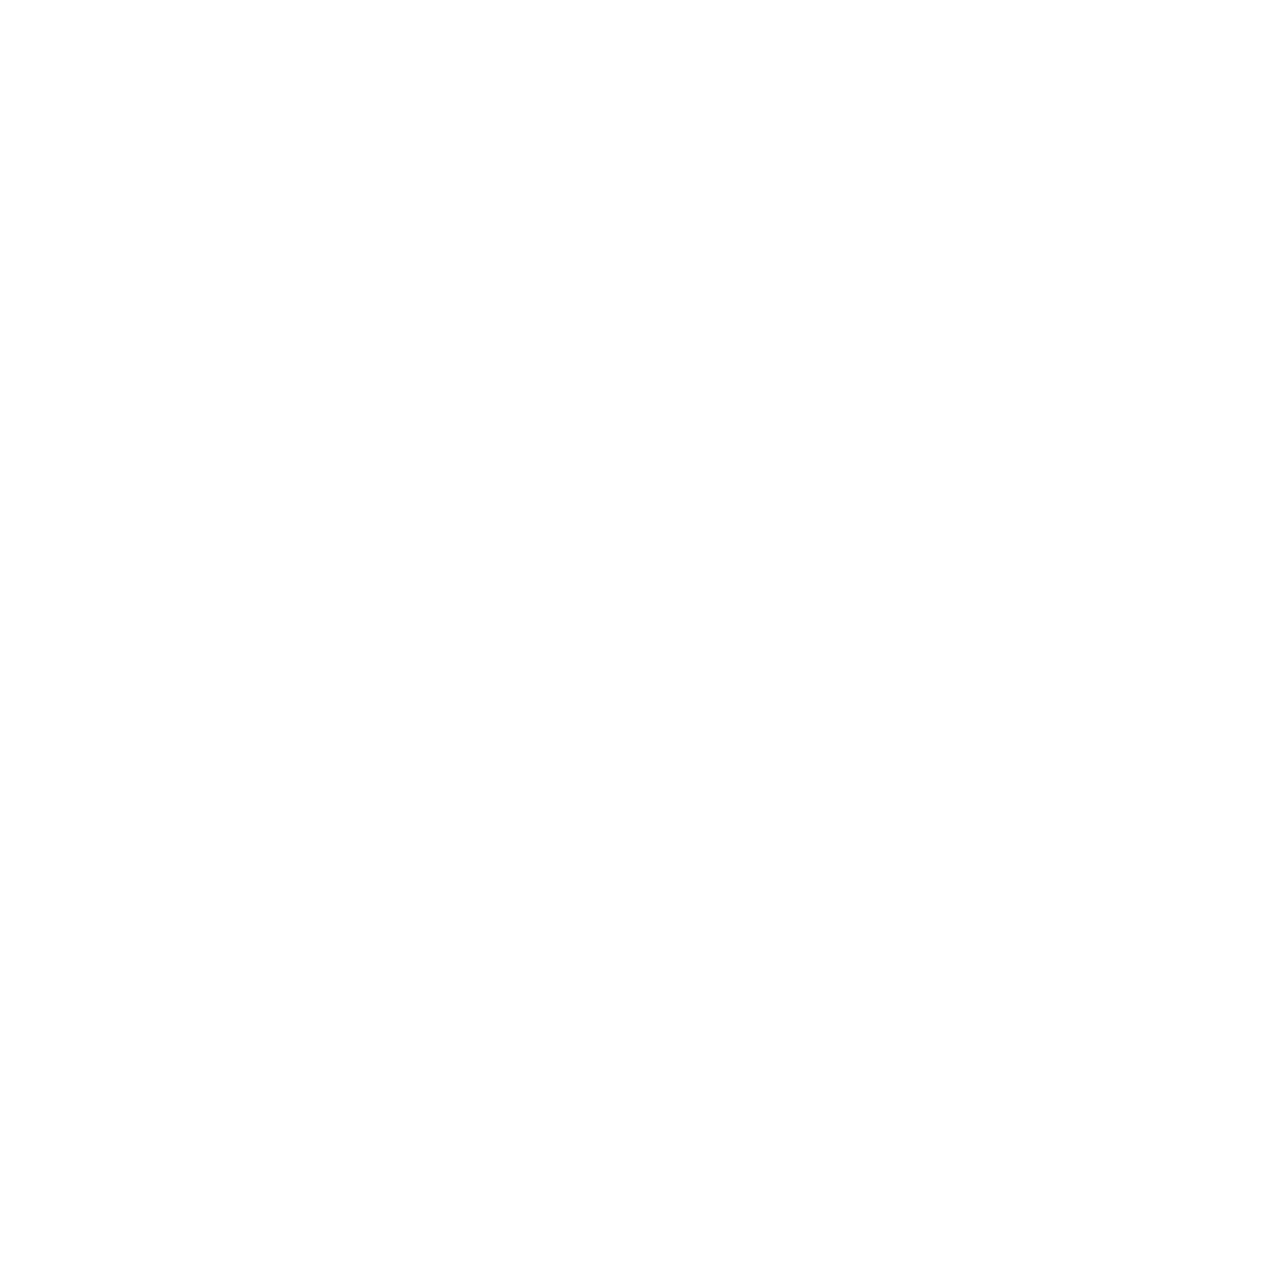 Gfx mobile money